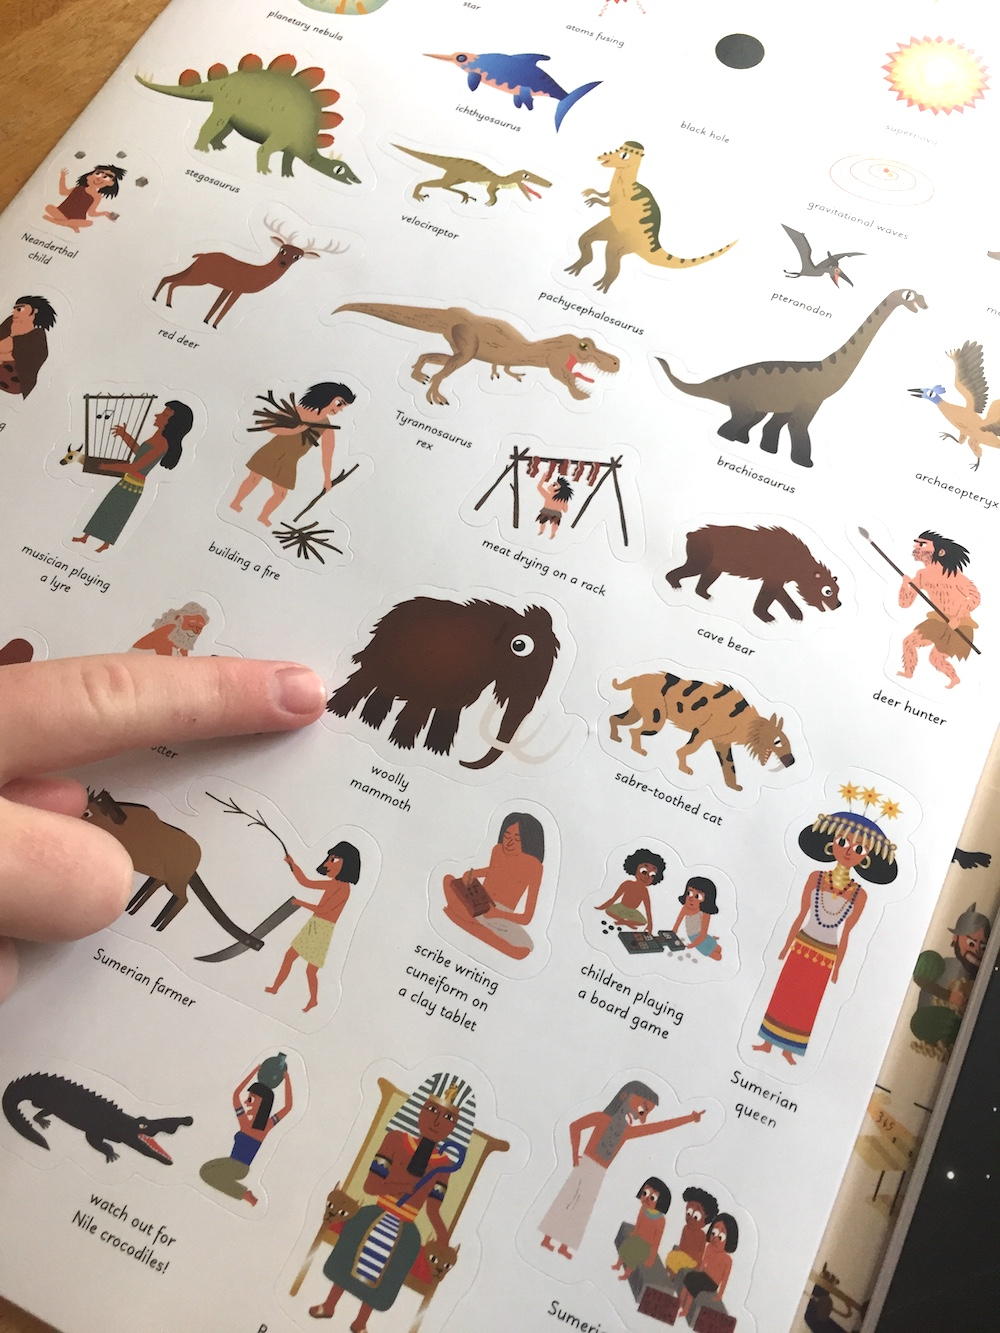 A Sticky History of the World: Tons of cool stickers through history